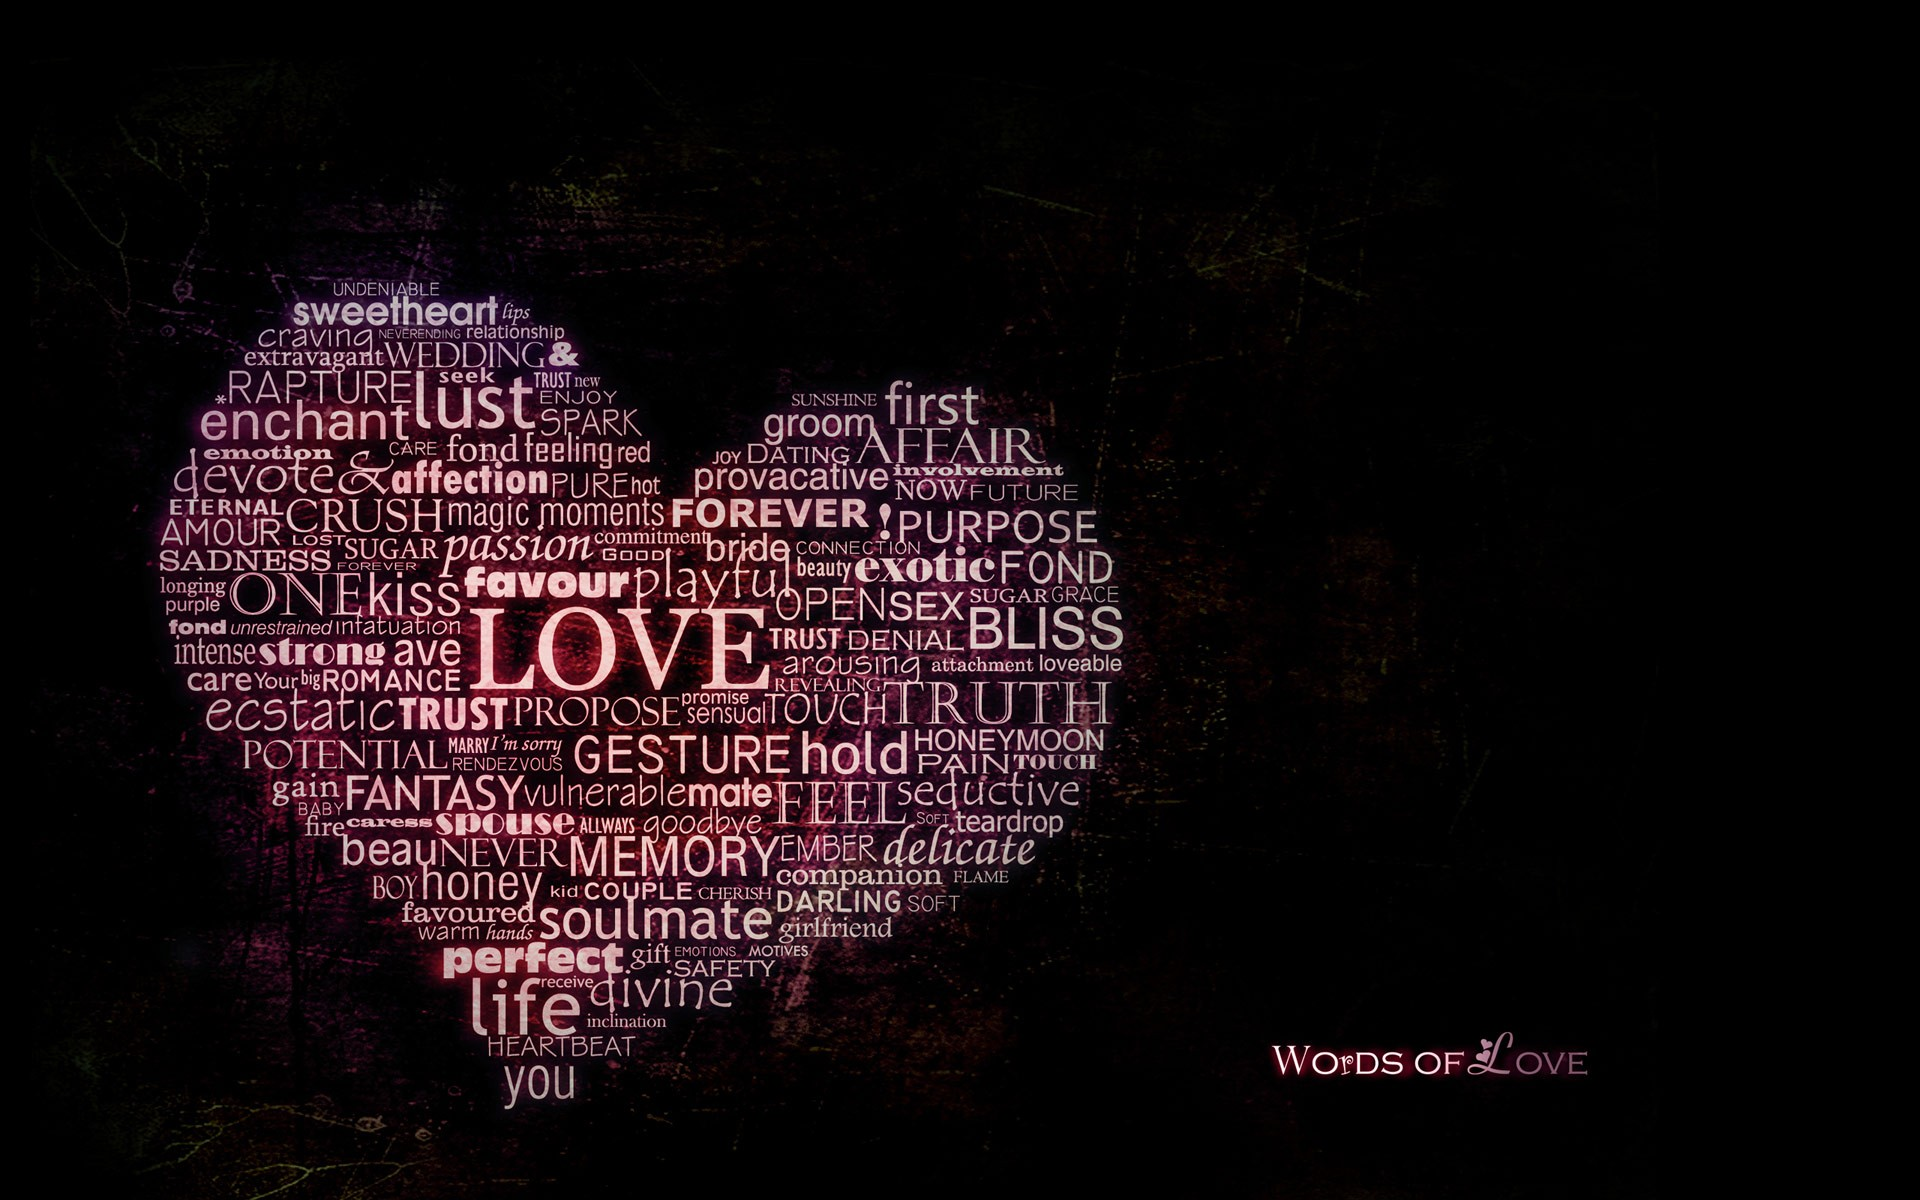 Free Download Love Love Quotes Wallpaper 1920x1200 For Your Images, Photos, Reviews